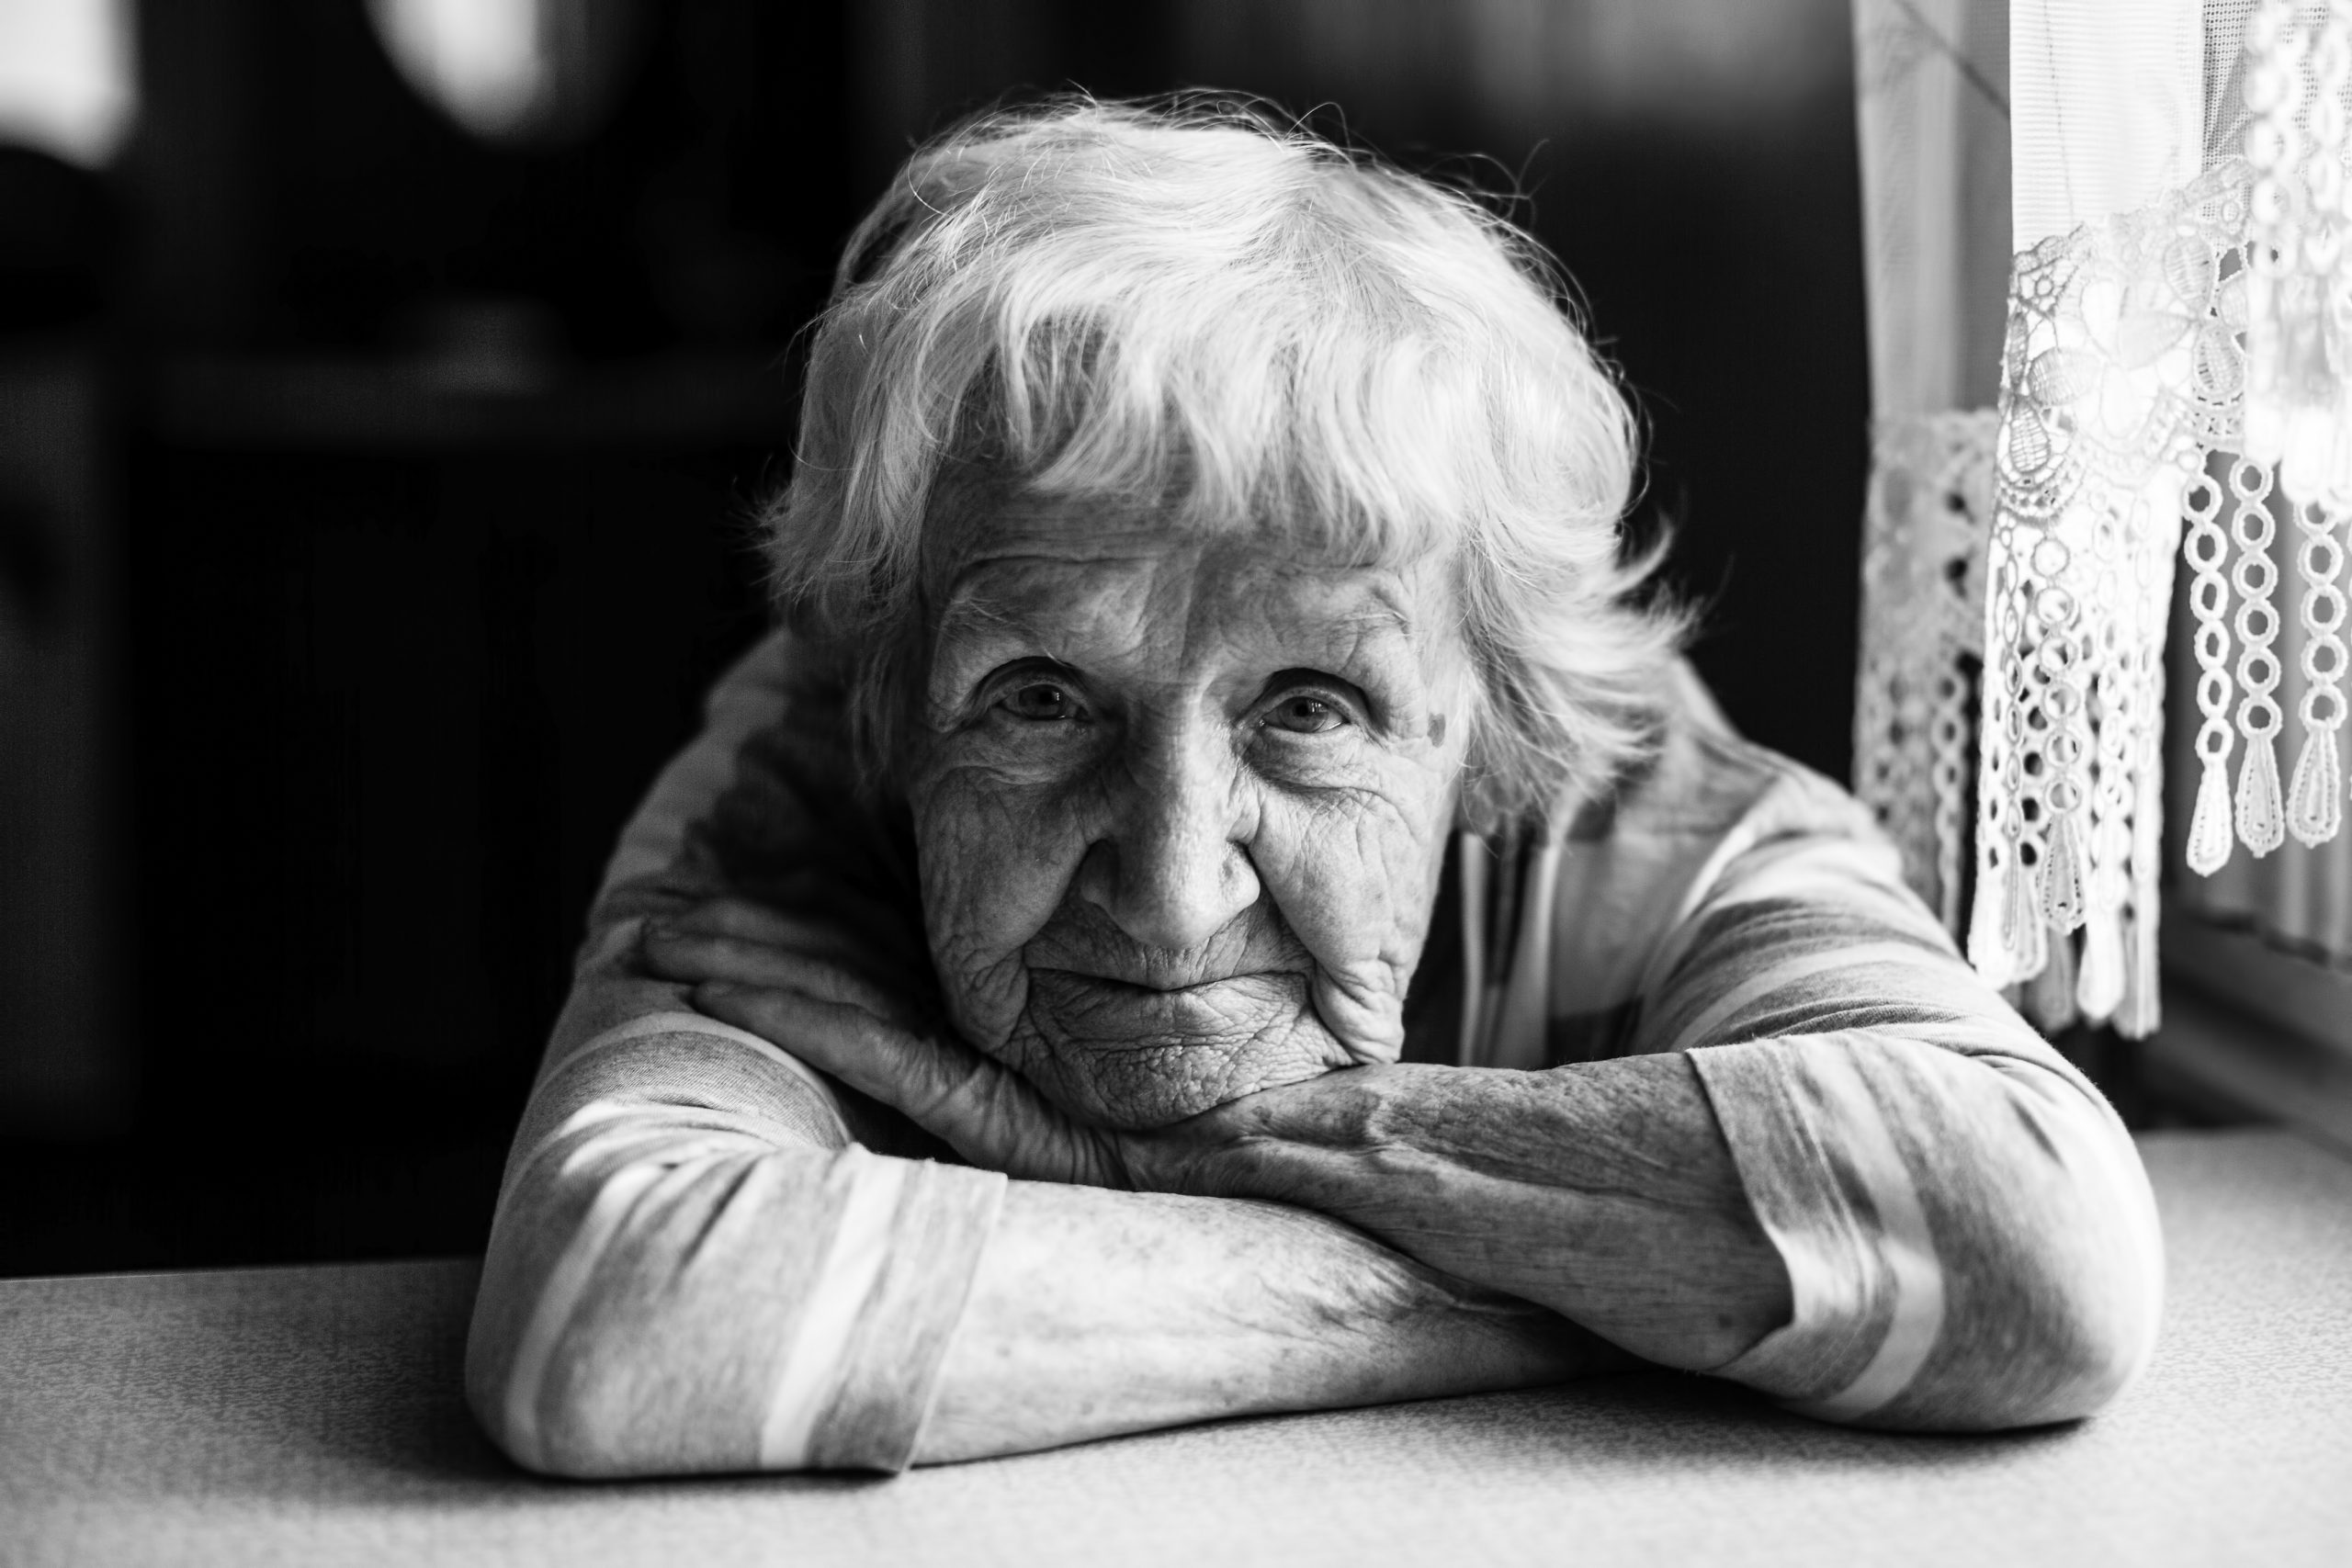 What Is The Negative Impact of Loneliness on Seniors?